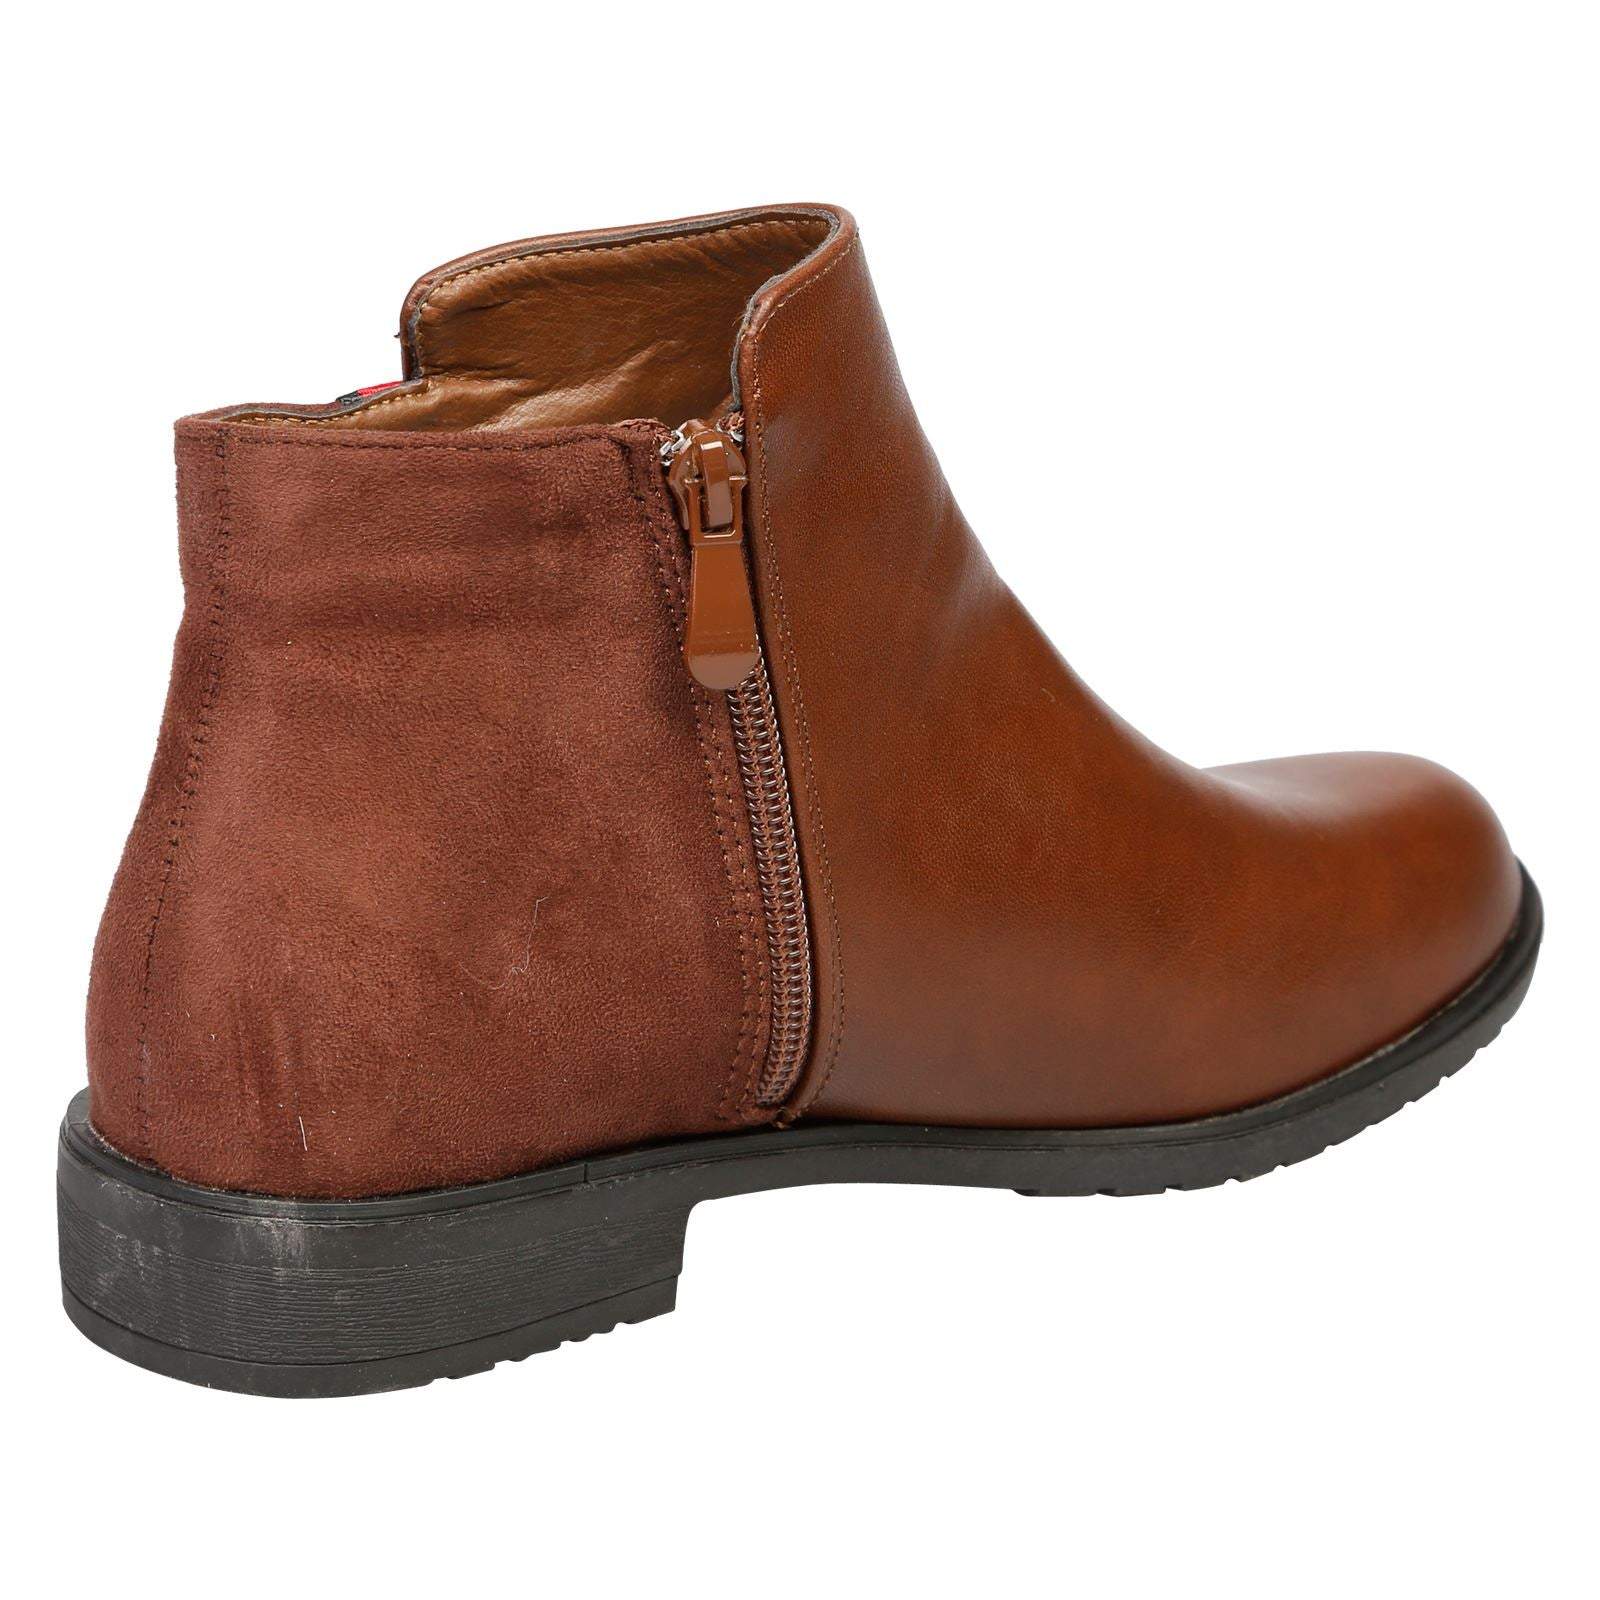 Harleigh Two Tone Ankle Boots in Brown - Feet First Fashion